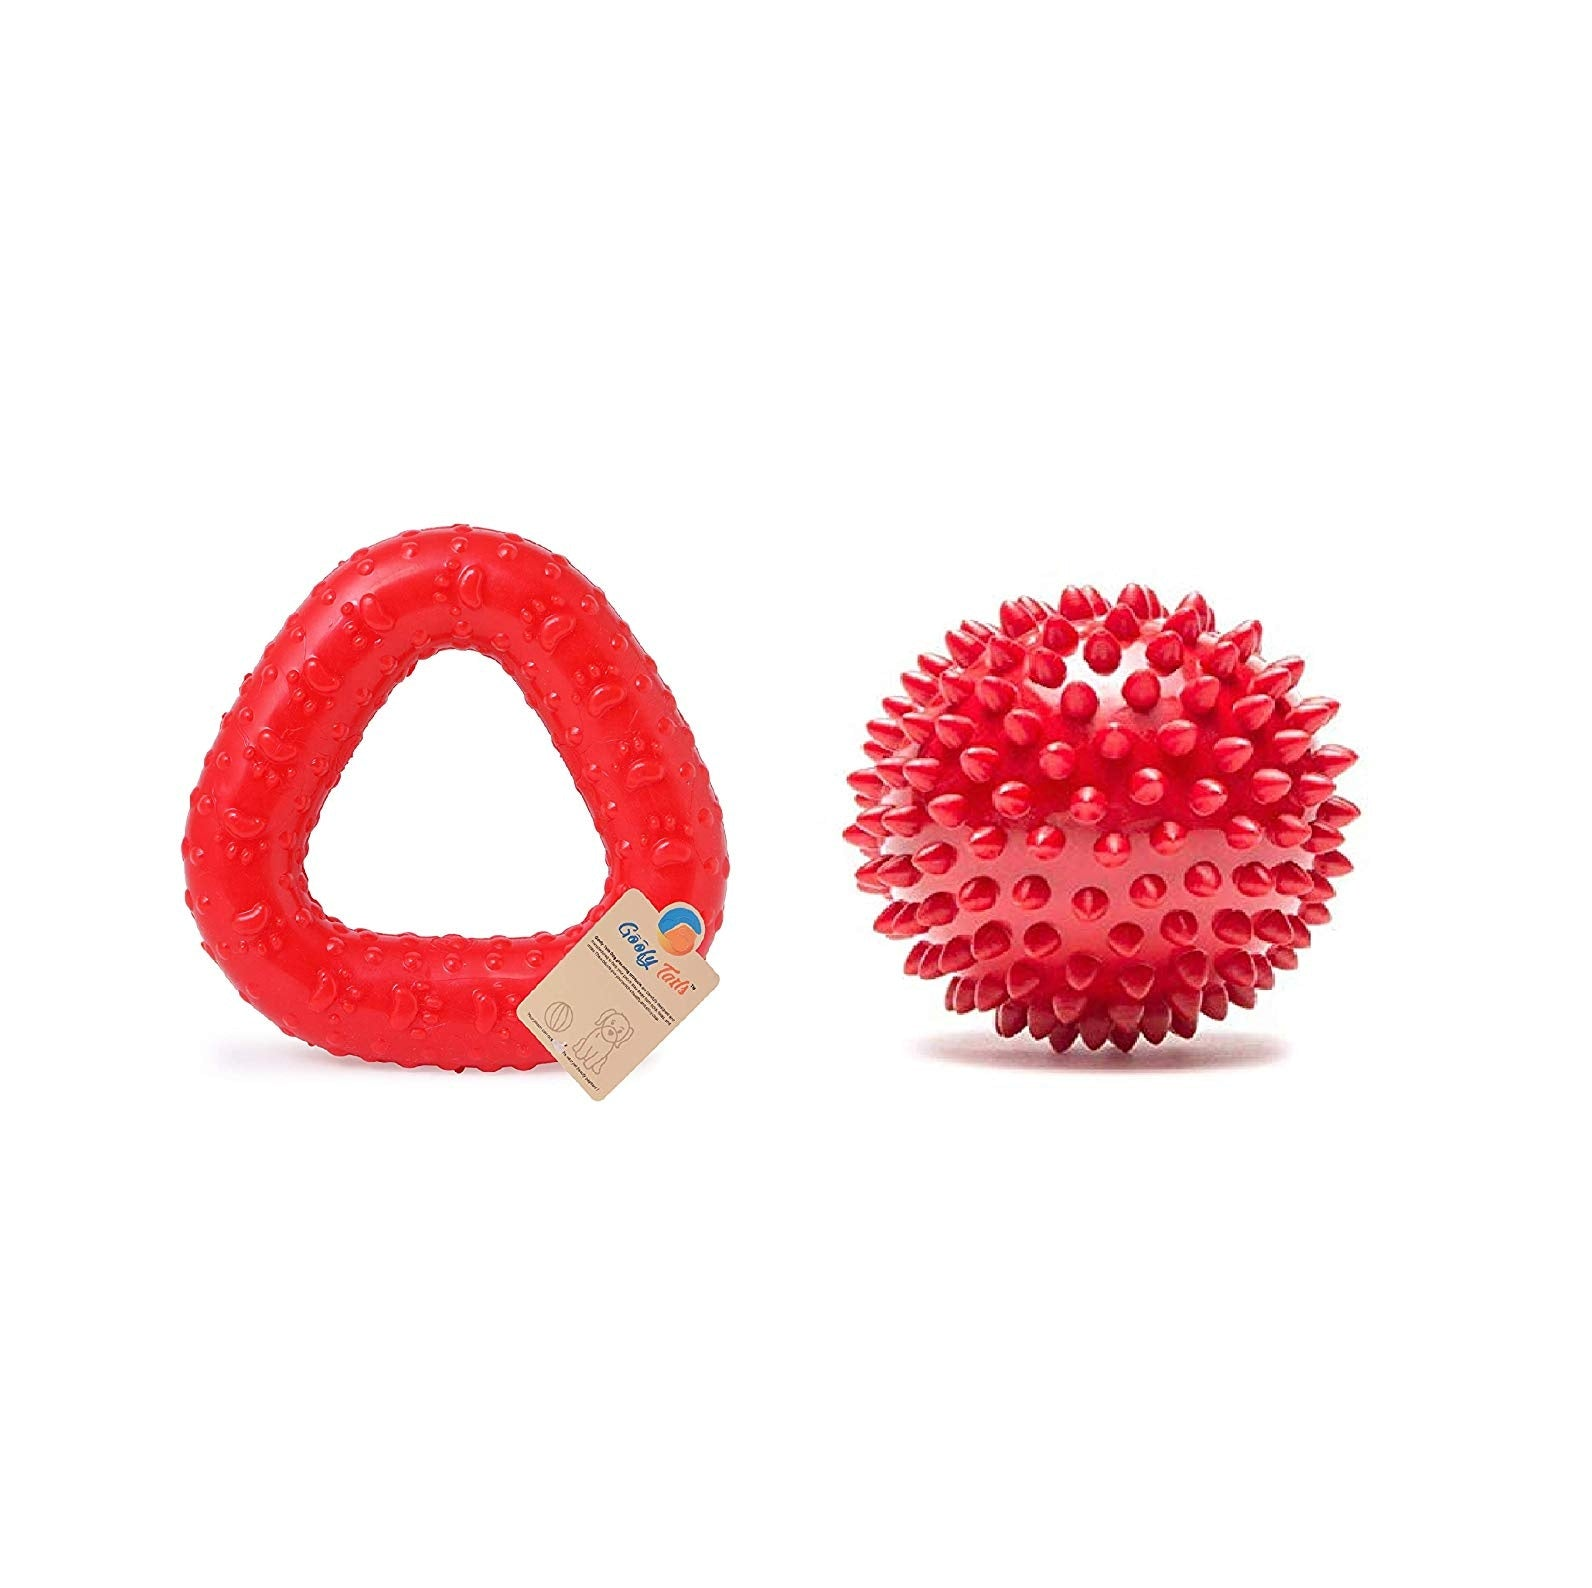 Goofy Tails Rubber Chew Dog Toy Combo of (Spike Ball and Trio Ring)